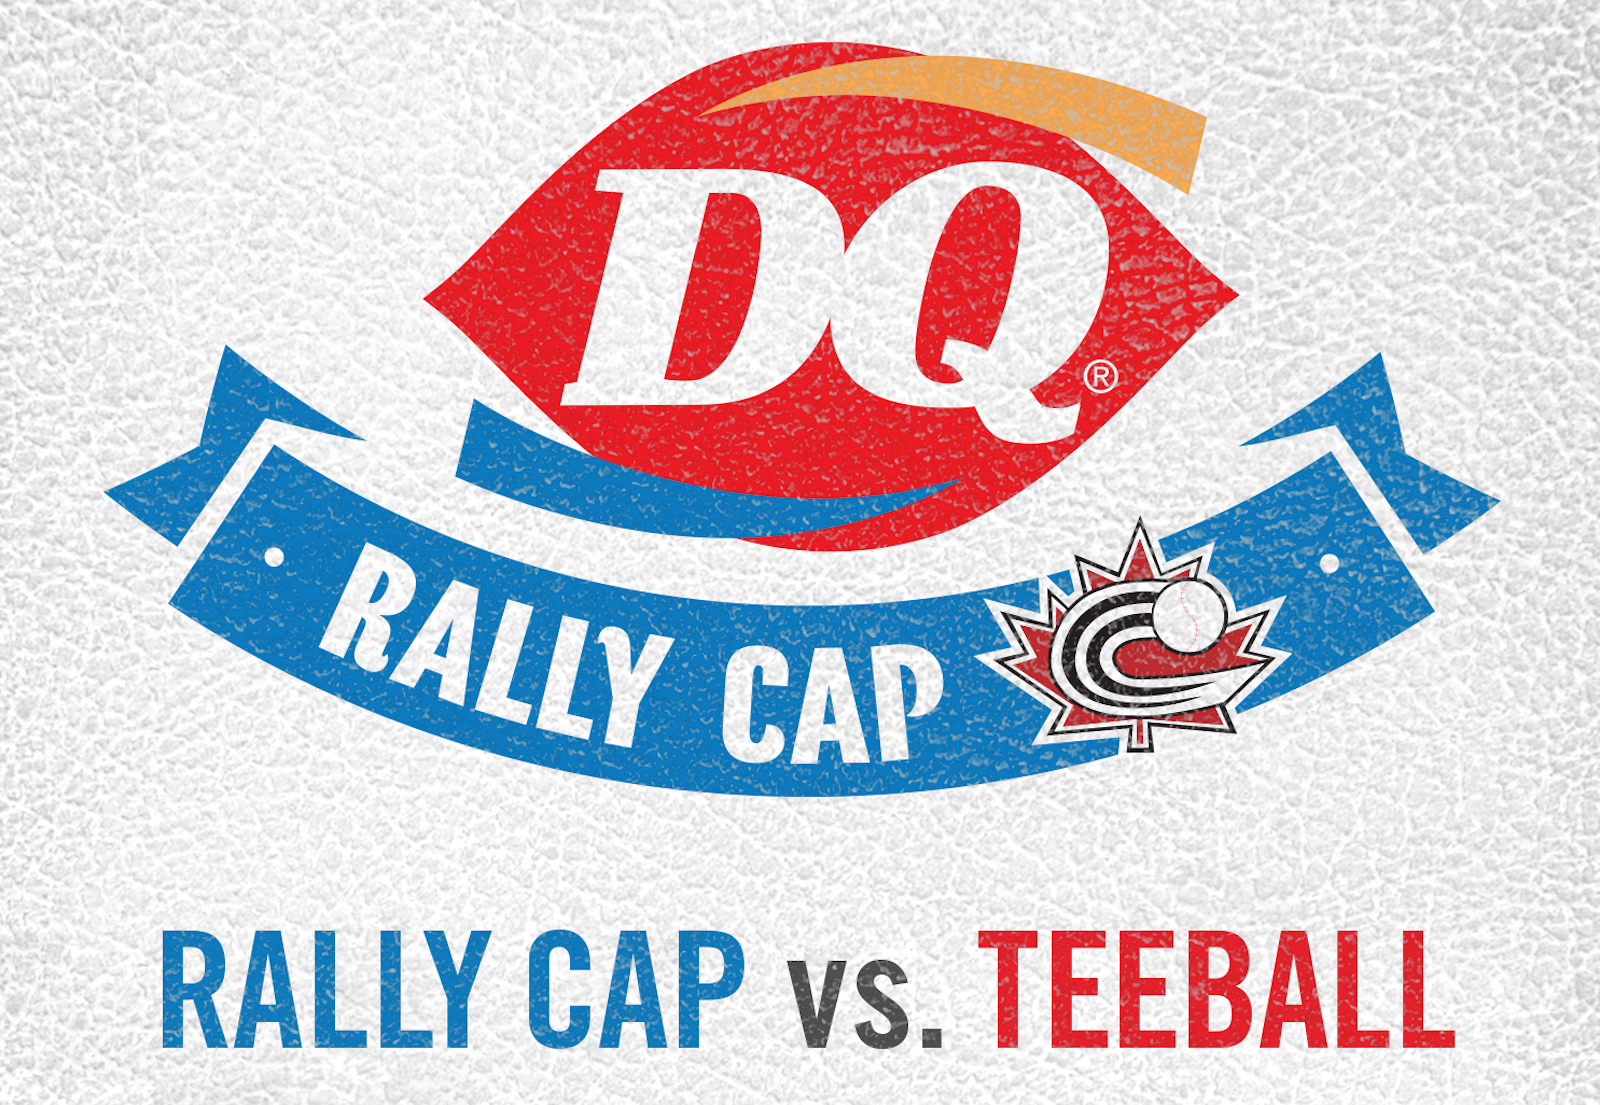 We decided to compare our Rally Cap program with tradition T-Ball and here's what we found out!